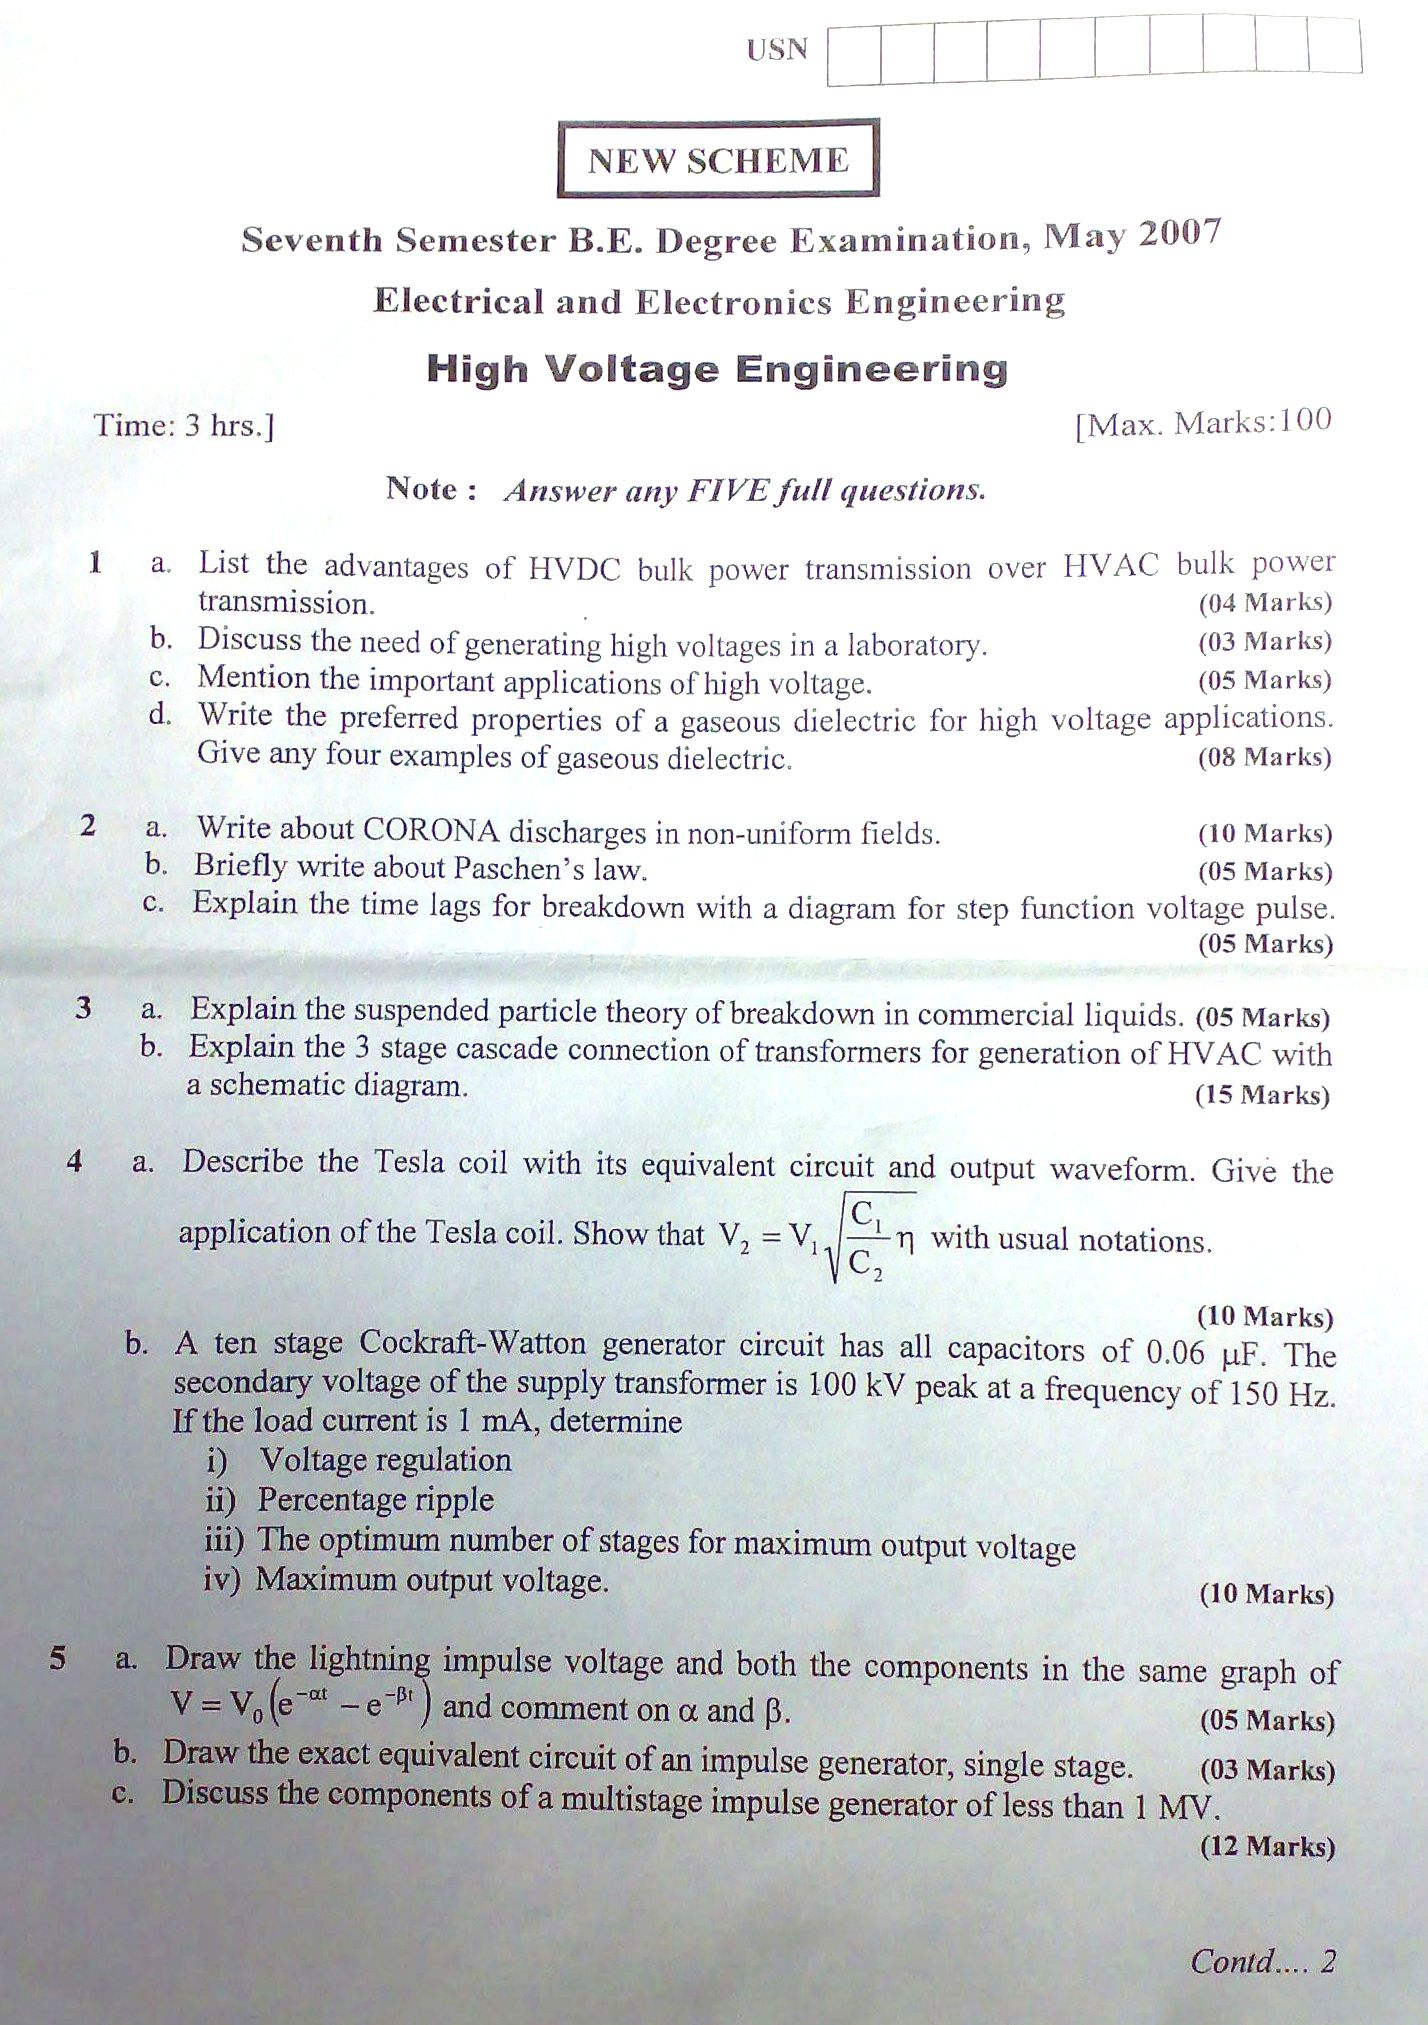 Visvesvaraya Technological University 7th SEM BE MAY 2007